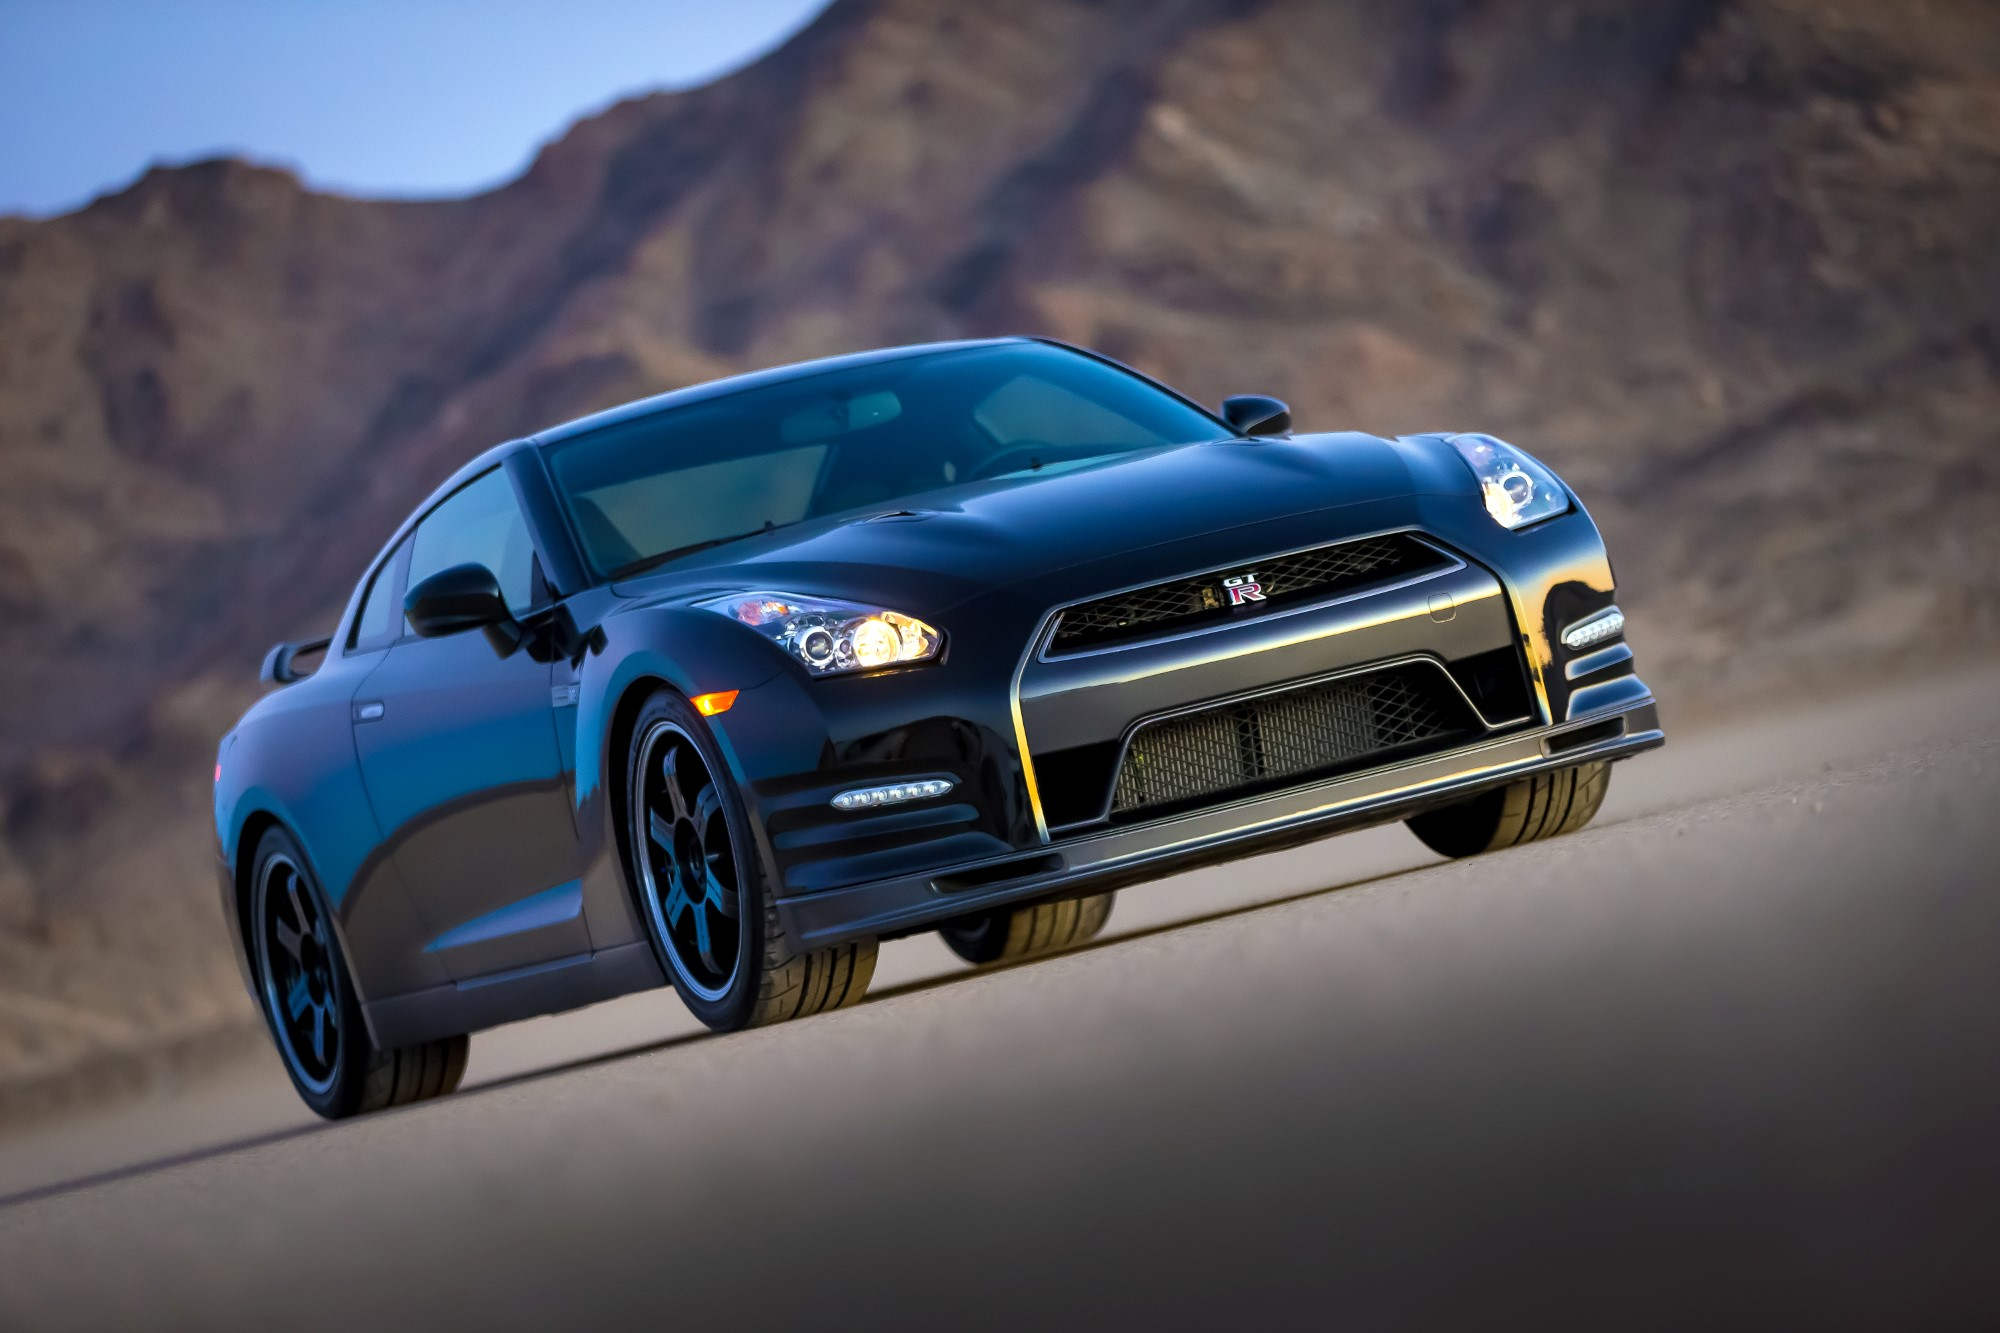 2015 Nissan GT-R NISMO To Do 0-60 MPH In 2.0 Seconds?